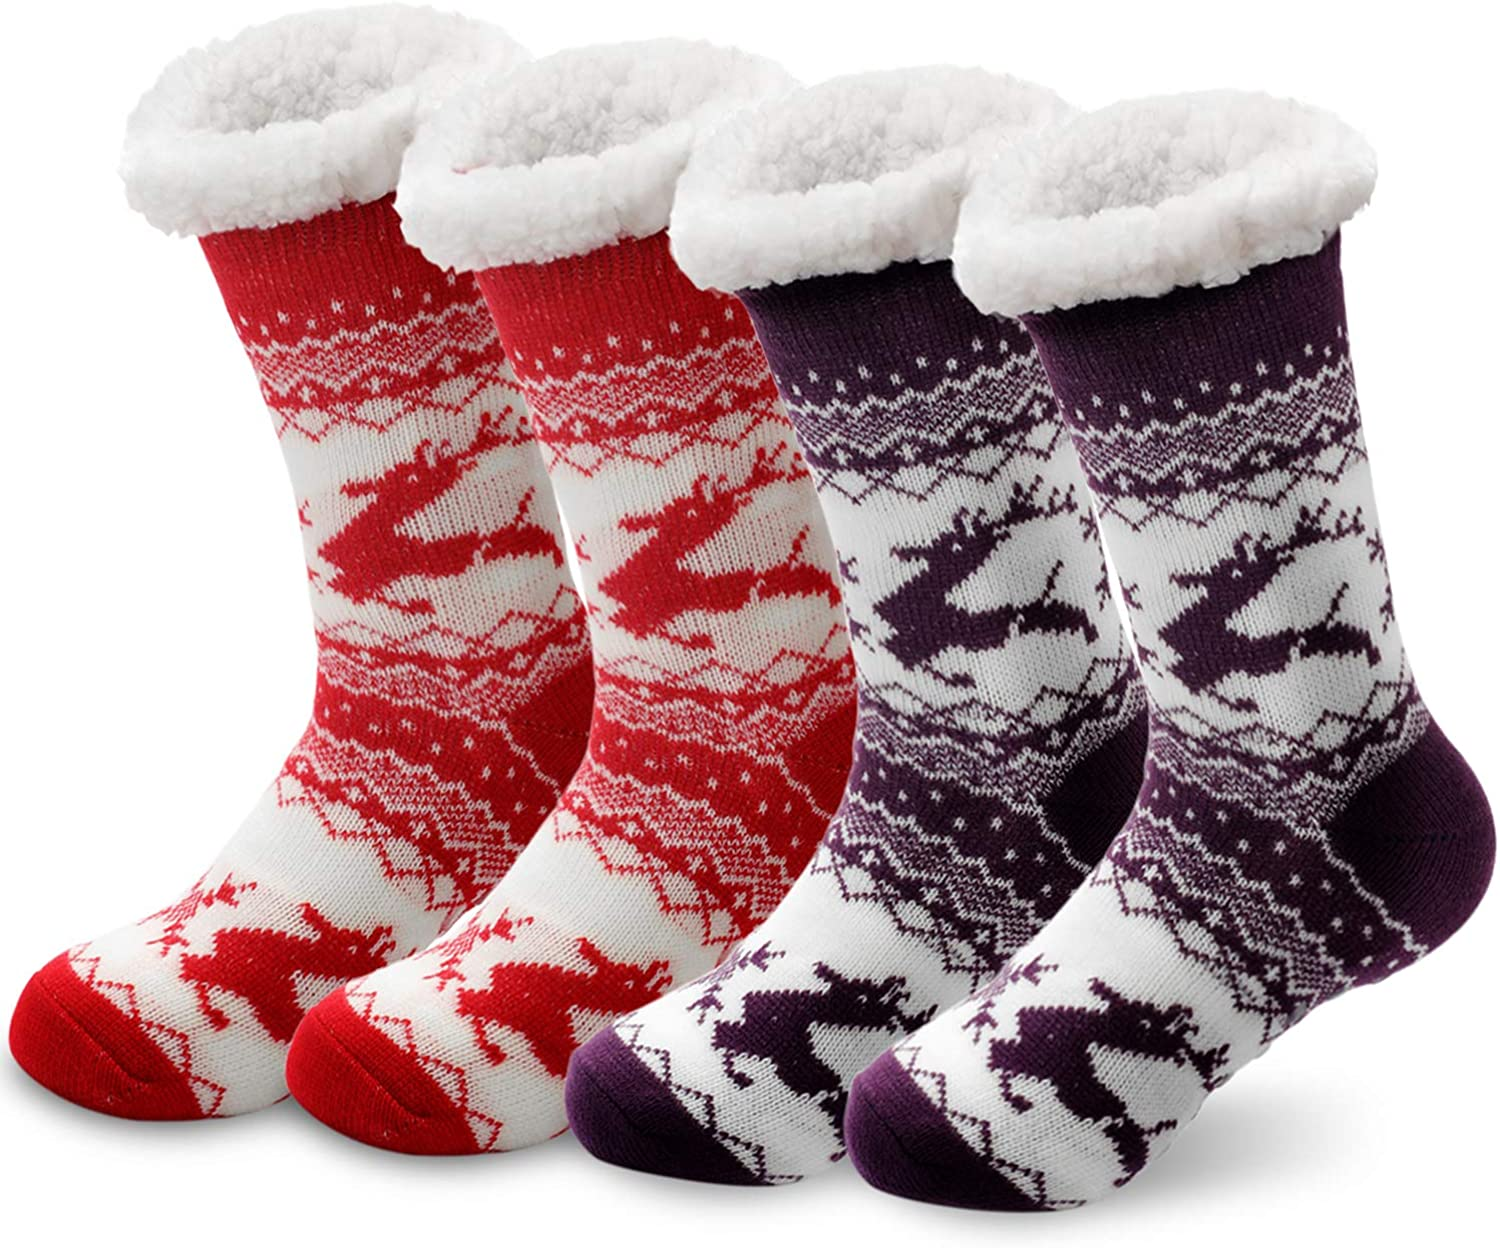 SEVENS 2 Pairs Women 25% OFF Slipper Socks Super Cozy Fuzzy Soft Indianapolis Mall Winter